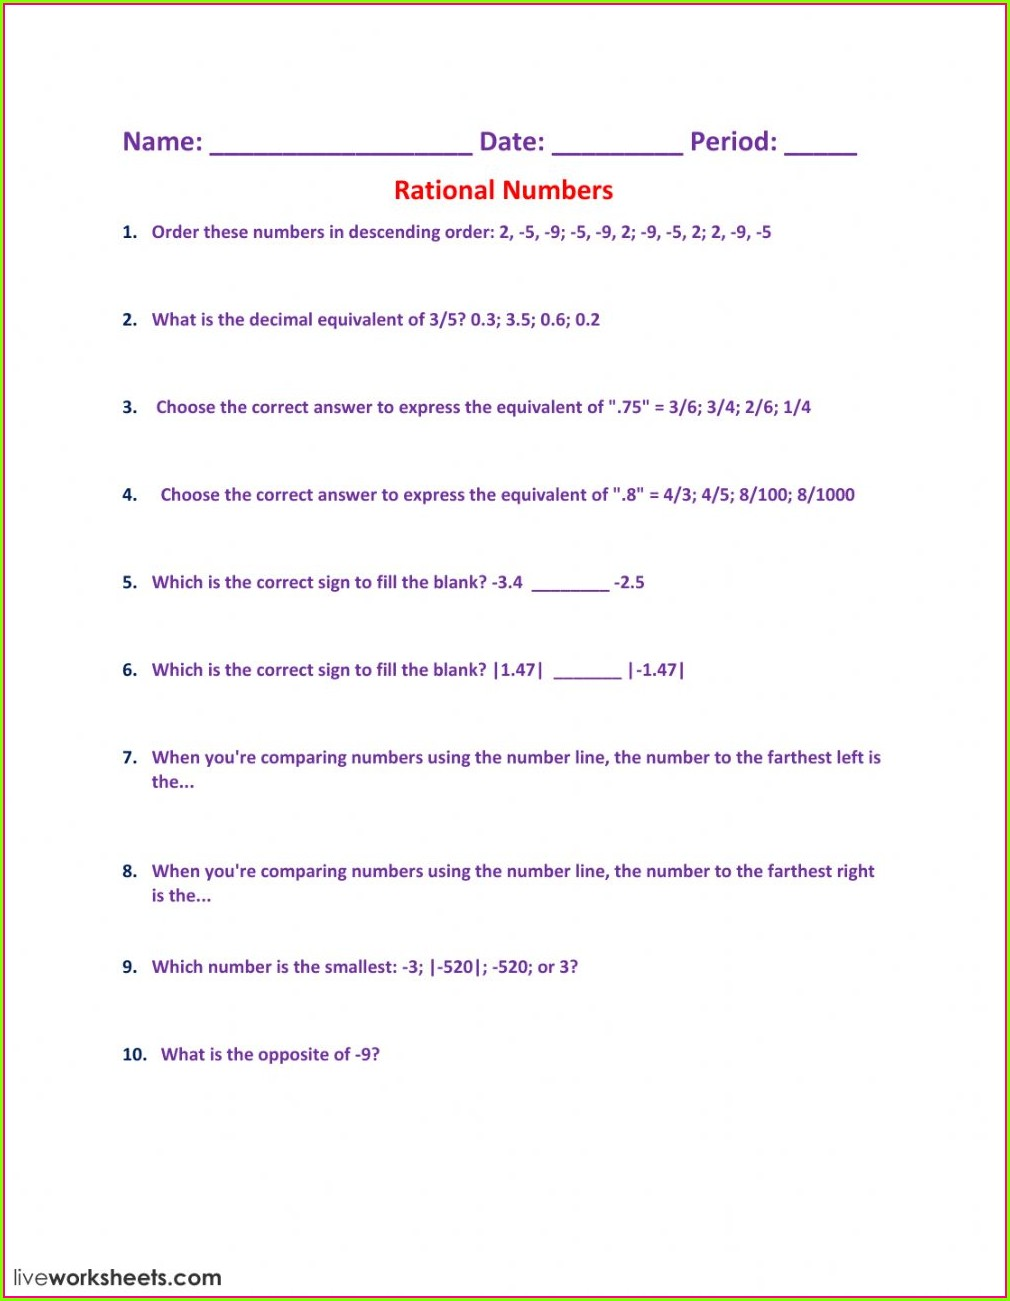 Ordering Rational Numbers On A Number Line Worksheet